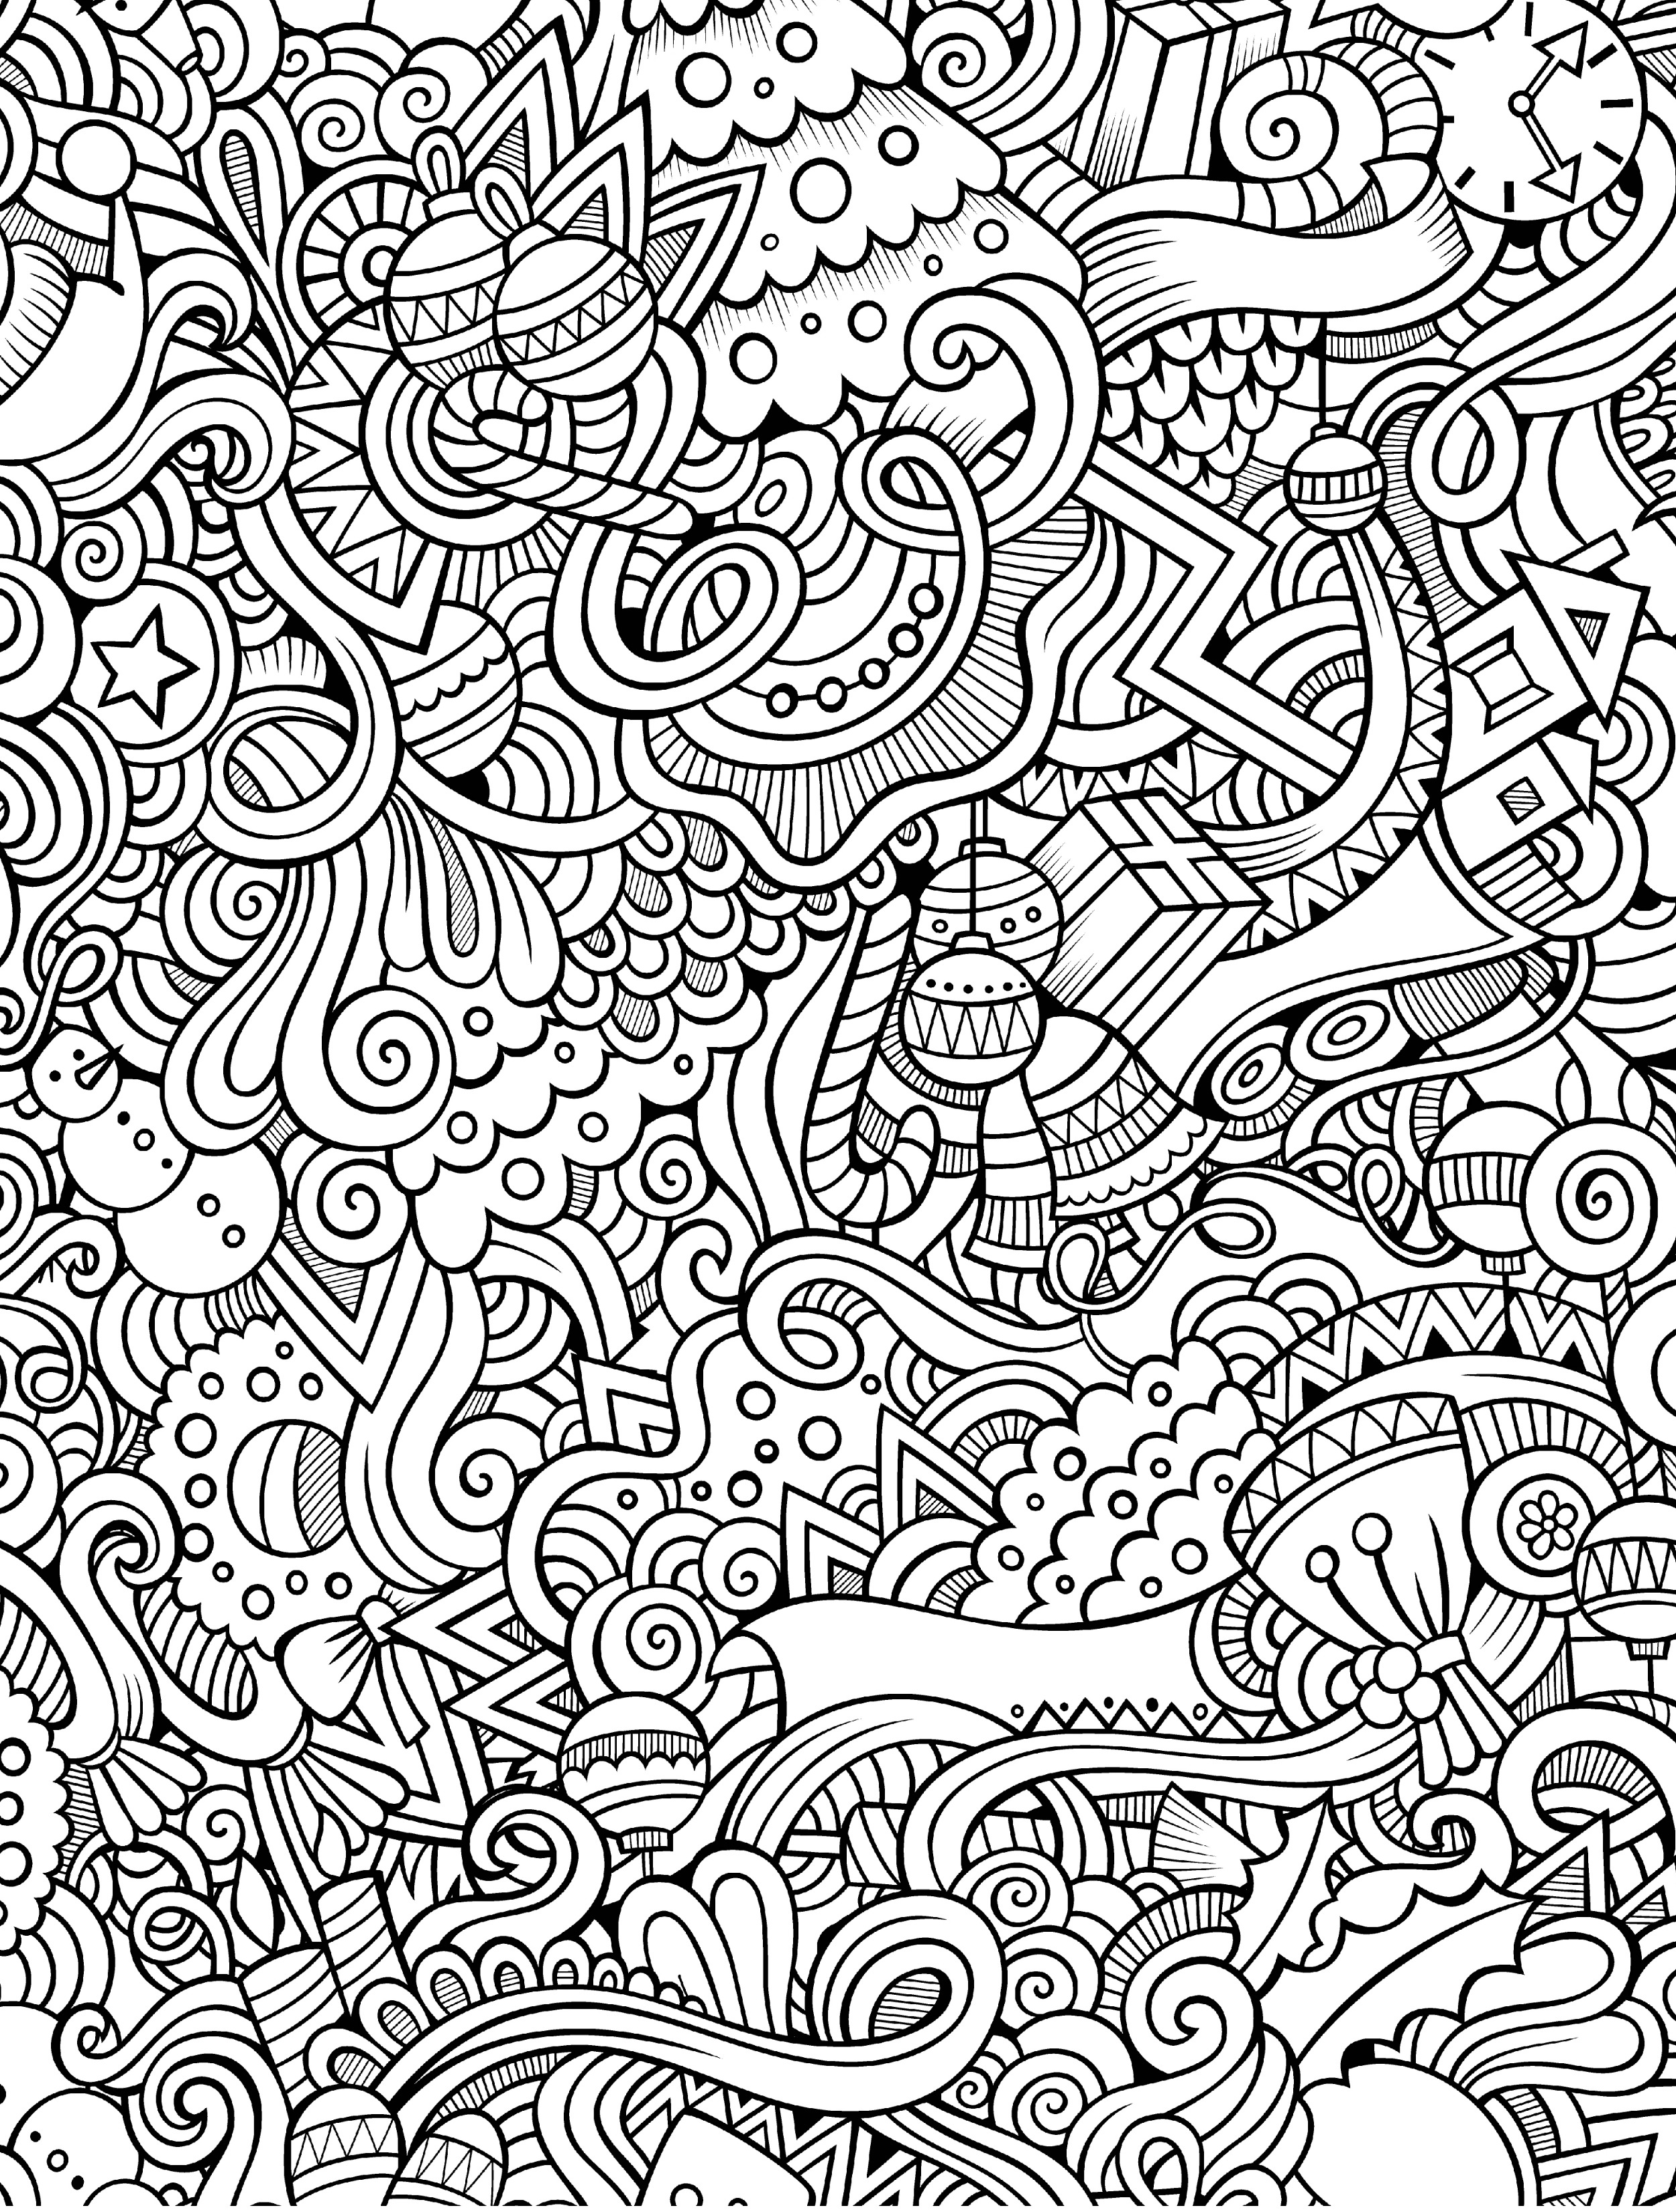 Christmas Coloring Pages For Adults Pdf With 10 Free Printable Holiday Adult